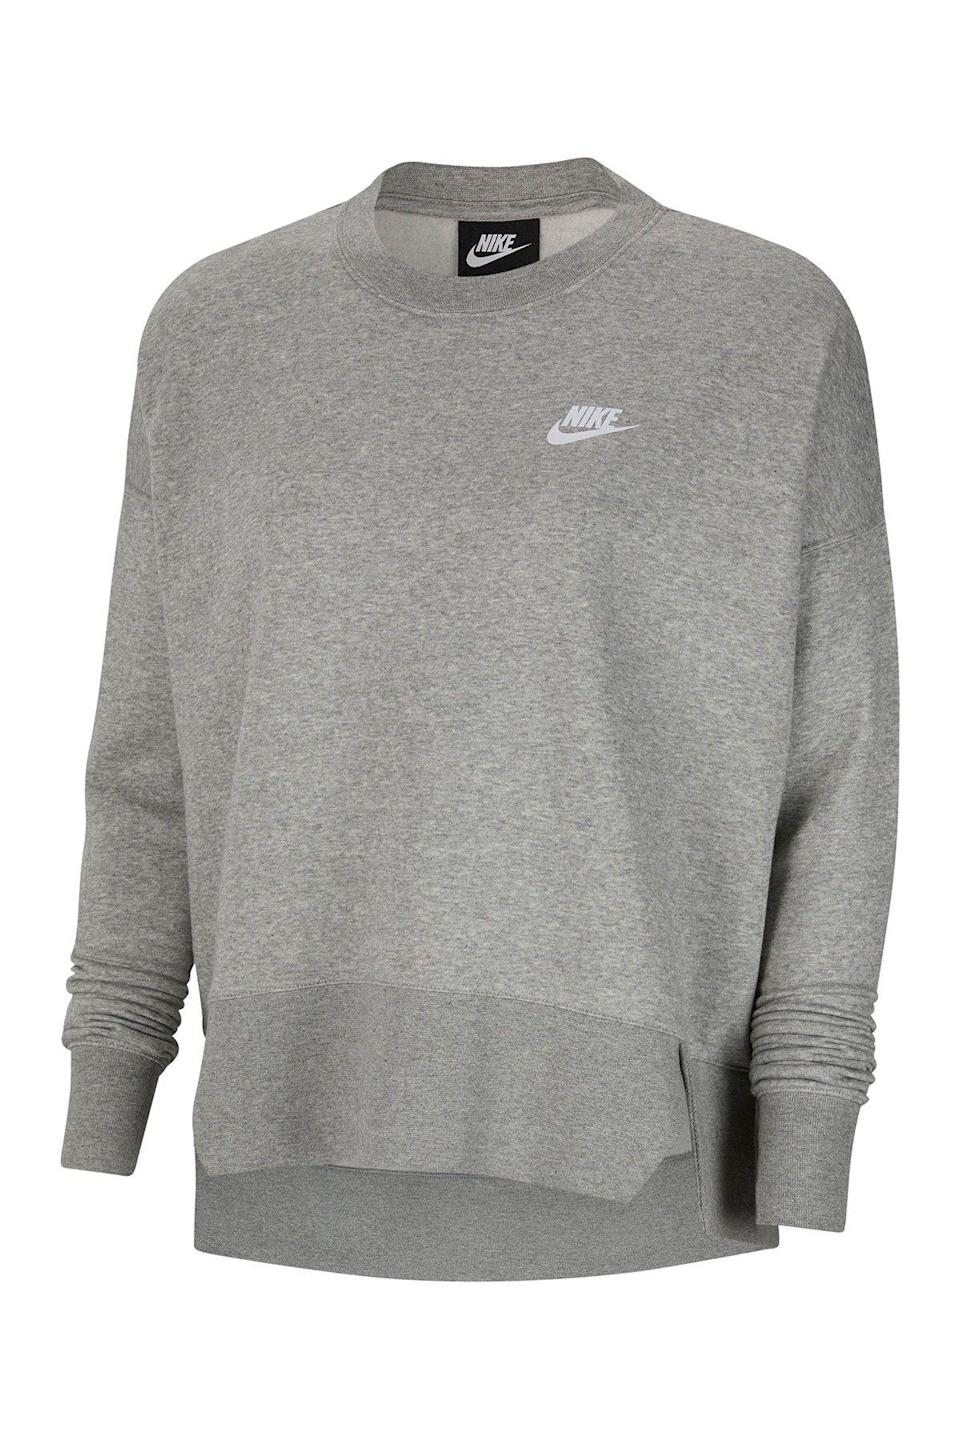 """<p><strong>Nike</strong></p><p>nordstromrack.com</p><p><a href=""""https://go.redirectingat.com?id=74968X1596630&url=https%3A%2F%2Fwww.nordstromrack.com%2Fshop%2Fproduct%2F3124026&sref=https%3A%2F%2Fwww.womenshealthmag.com%2Fstyle%2Fg33534500%2Fnordstrom-rack-nike-sale%2F"""" rel=""""nofollow noopener"""" target=""""_blank"""" data-ylk=""""slk:Shop Now"""" class=""""link rapid-noclick-resp"""">Shop Now</a></p><p><del>$55</del><strong><br>$37.97</strong></p><p>With a classic, crewneck silhouette and Nike's iconic swoosh logo, this sweatshirt is versatile enough to wear during a quick errands. </p>"""